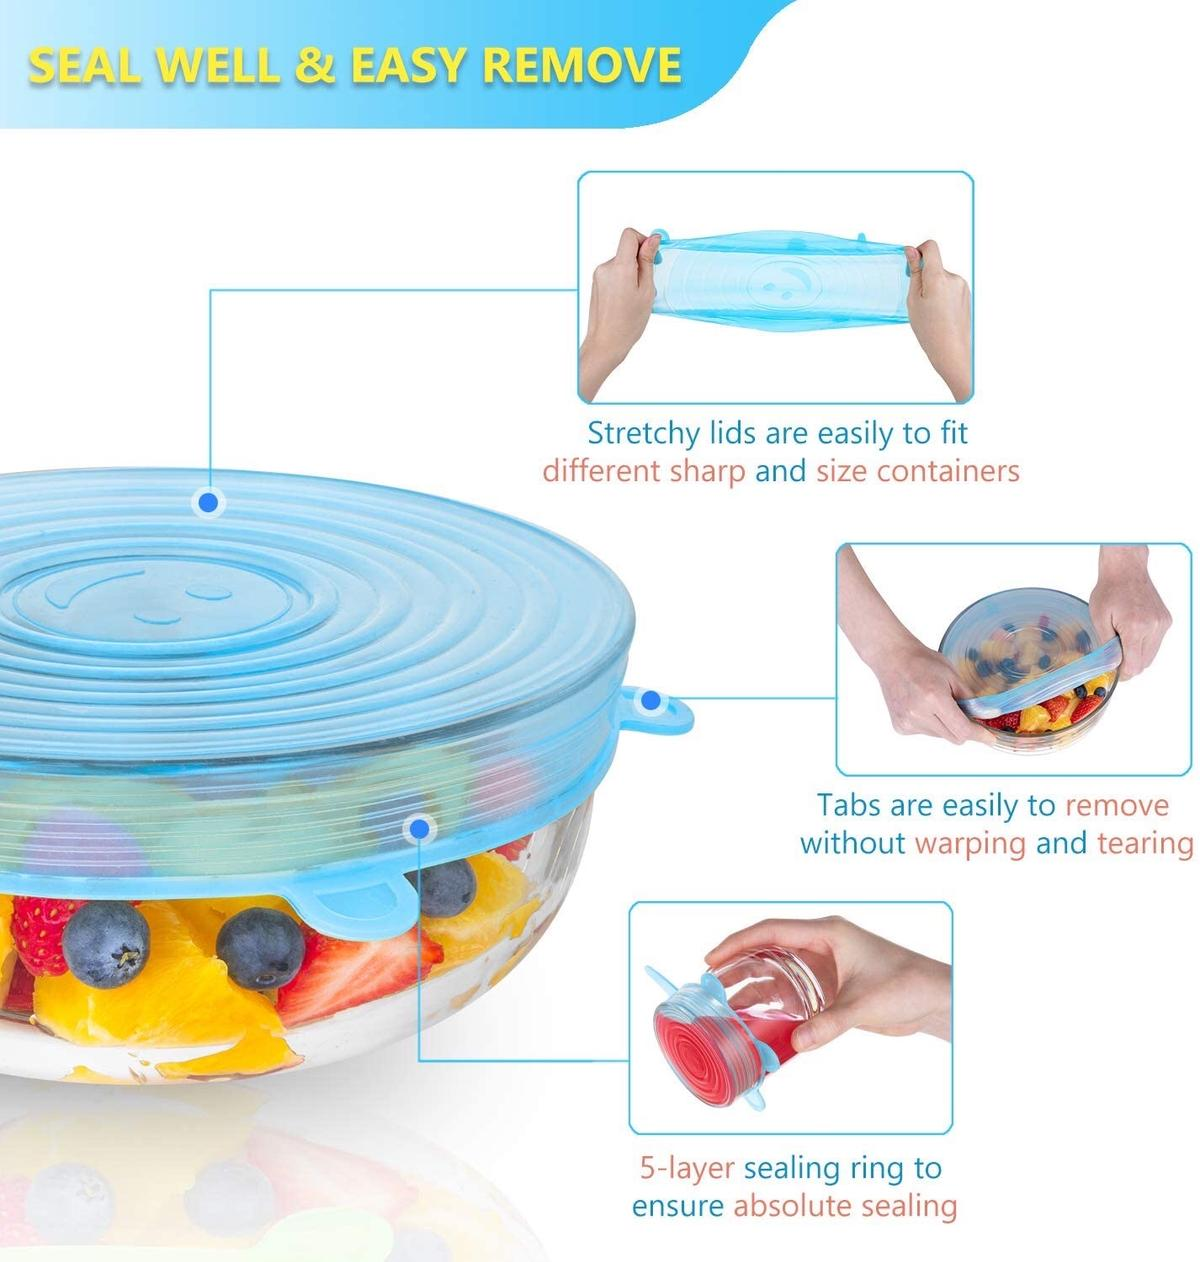 * Silicone Covers,silicone lids covers are made of food grade silicone, 100% imported high quality silicone, harmless.  * Multi-function:Silicone food covers,14pack with 2 colors,come in 7 sizes(6.5 cm, 9.5cm, 11.2cm, 14.2 cm, 16 cm, 20 cm,25cm).The containers can cover in various shapes and sizes, including salad bowls, cans, cups, pots, pans, watermelon, pineapple, melon or other fruits and vegetables.  * Reusable & Durable:Silicone Covers for food,made of high quality silicone, soft texture,